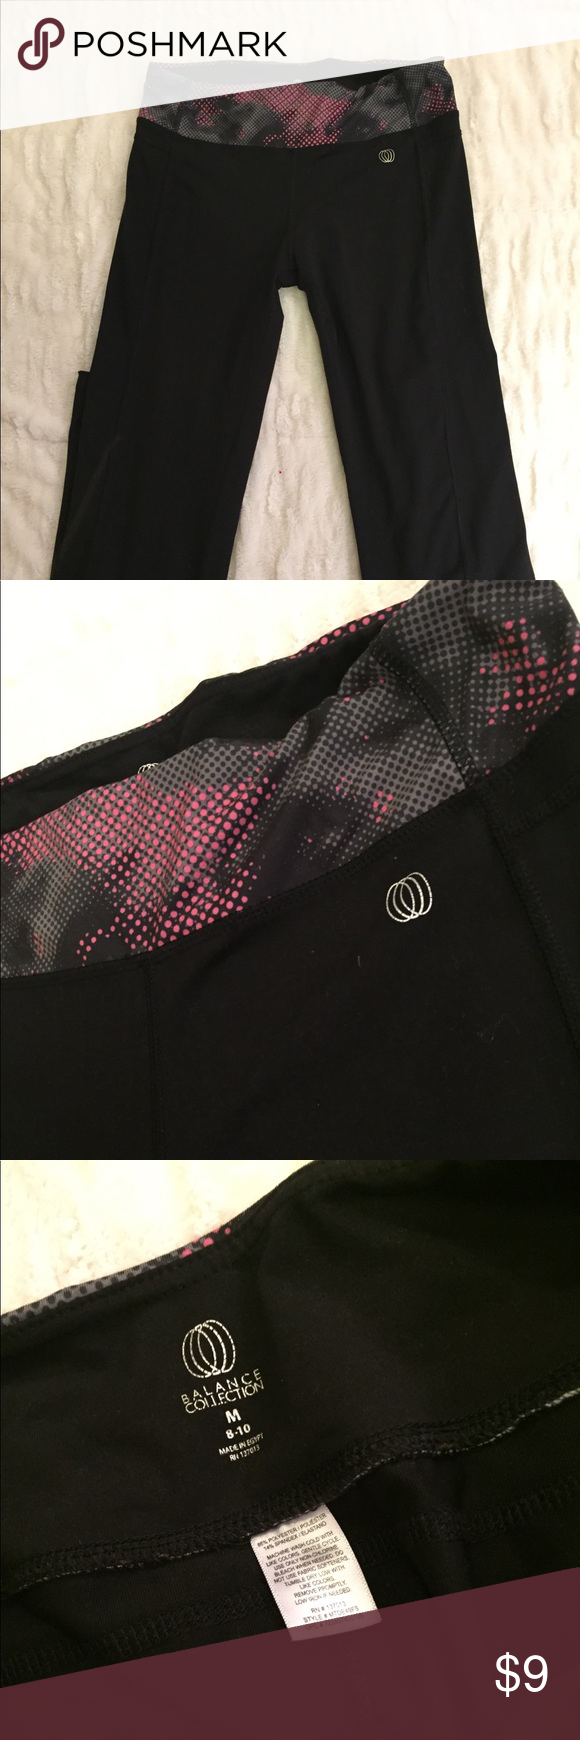 Like New Black and Pink Yoga Pants Size Medium These Like New Black and Pink Yoga Pants Size Medium are the balance collection. They shows no signs of wear, use, marks or stains! Pants Track Pants & Joggers